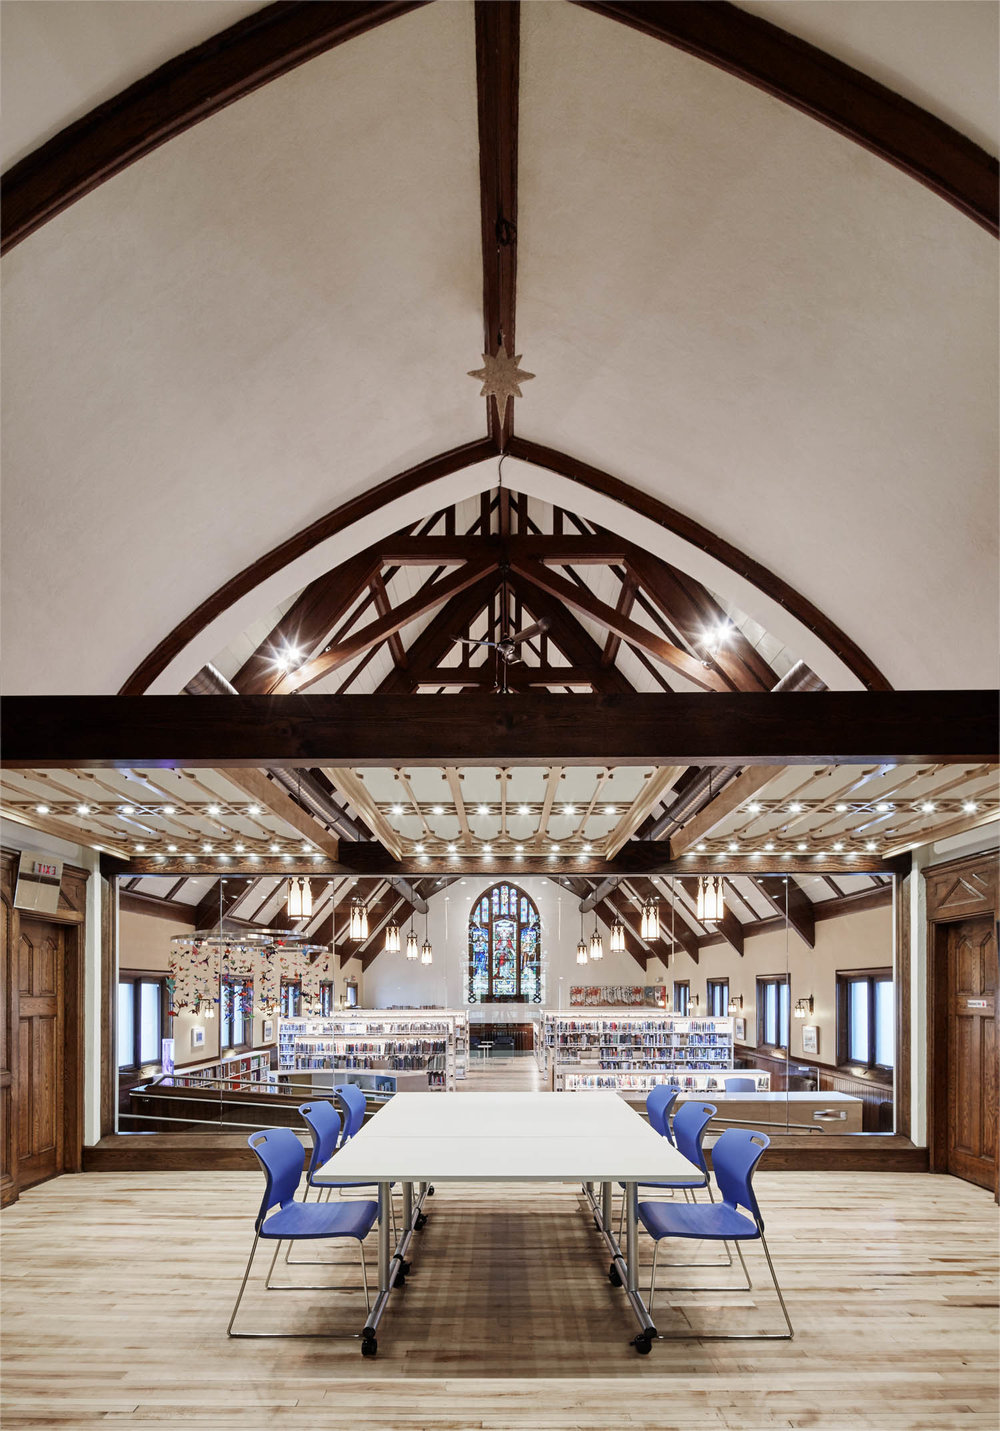 houdinidesign_ARCHITECTS_Kentville Library_Kentville_Annapolis Valley_Adaptive_Reuse_Church_Renovation_Community Room_03.jpg